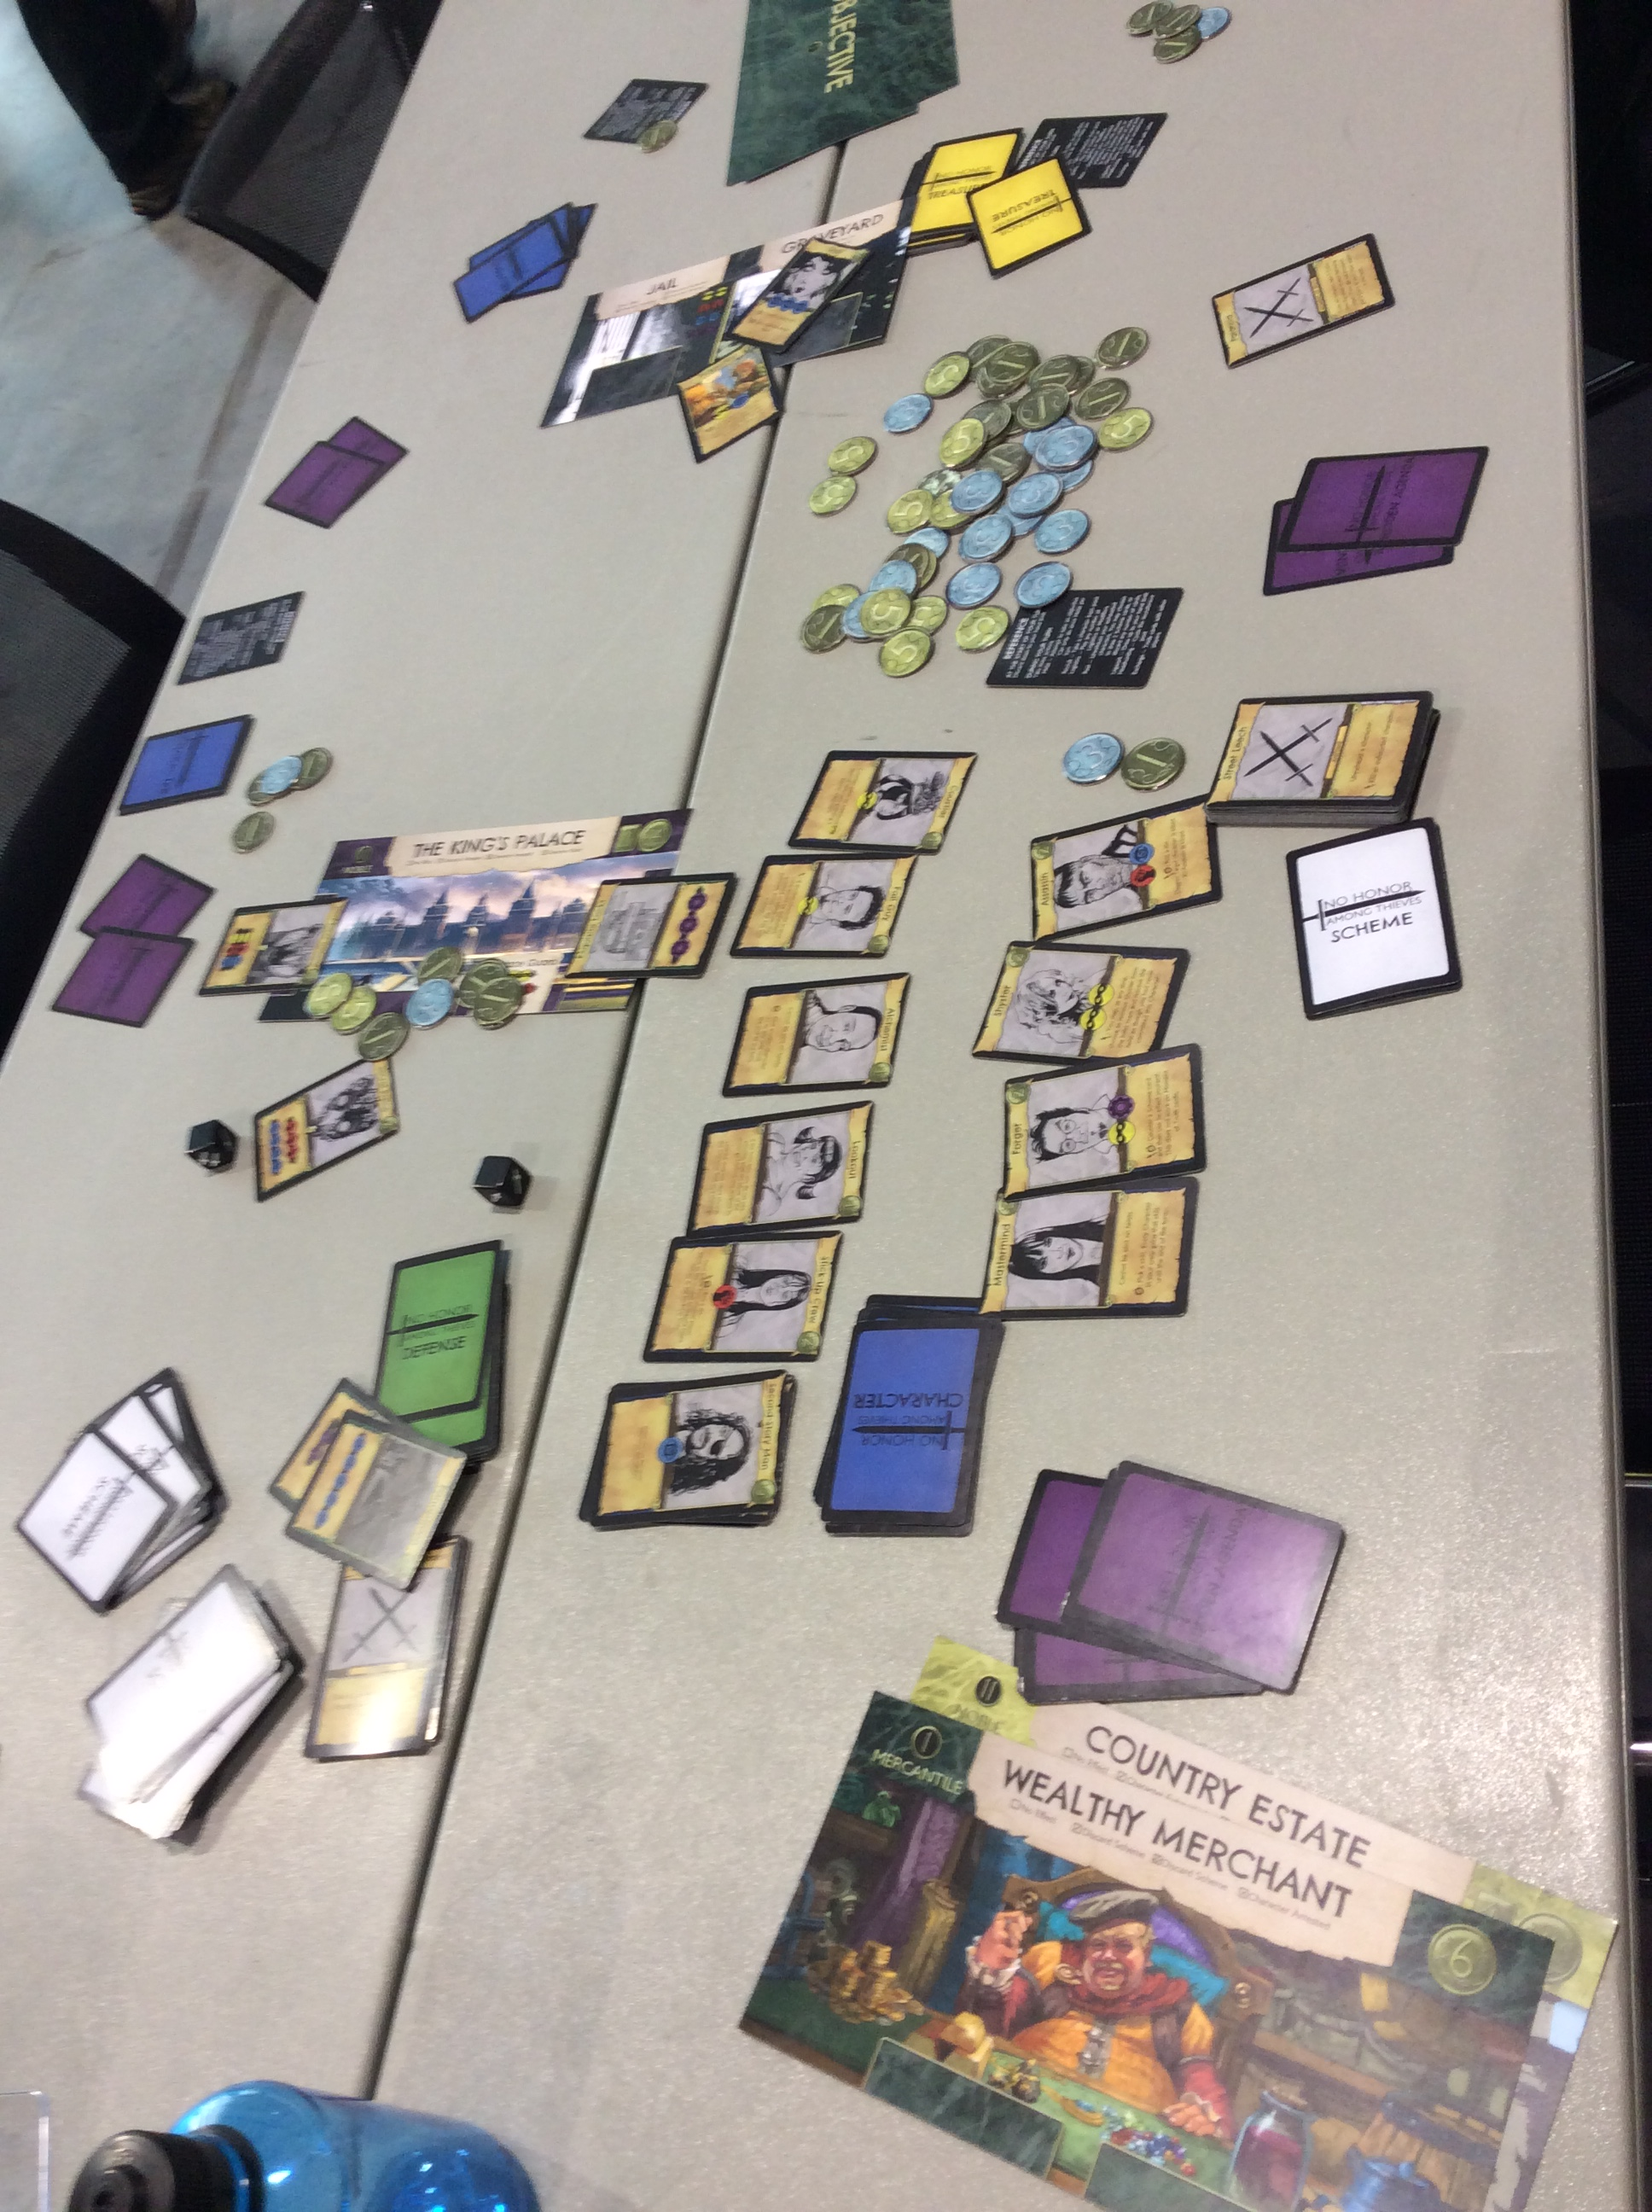 No Honor Among Thieves game laid out on the table